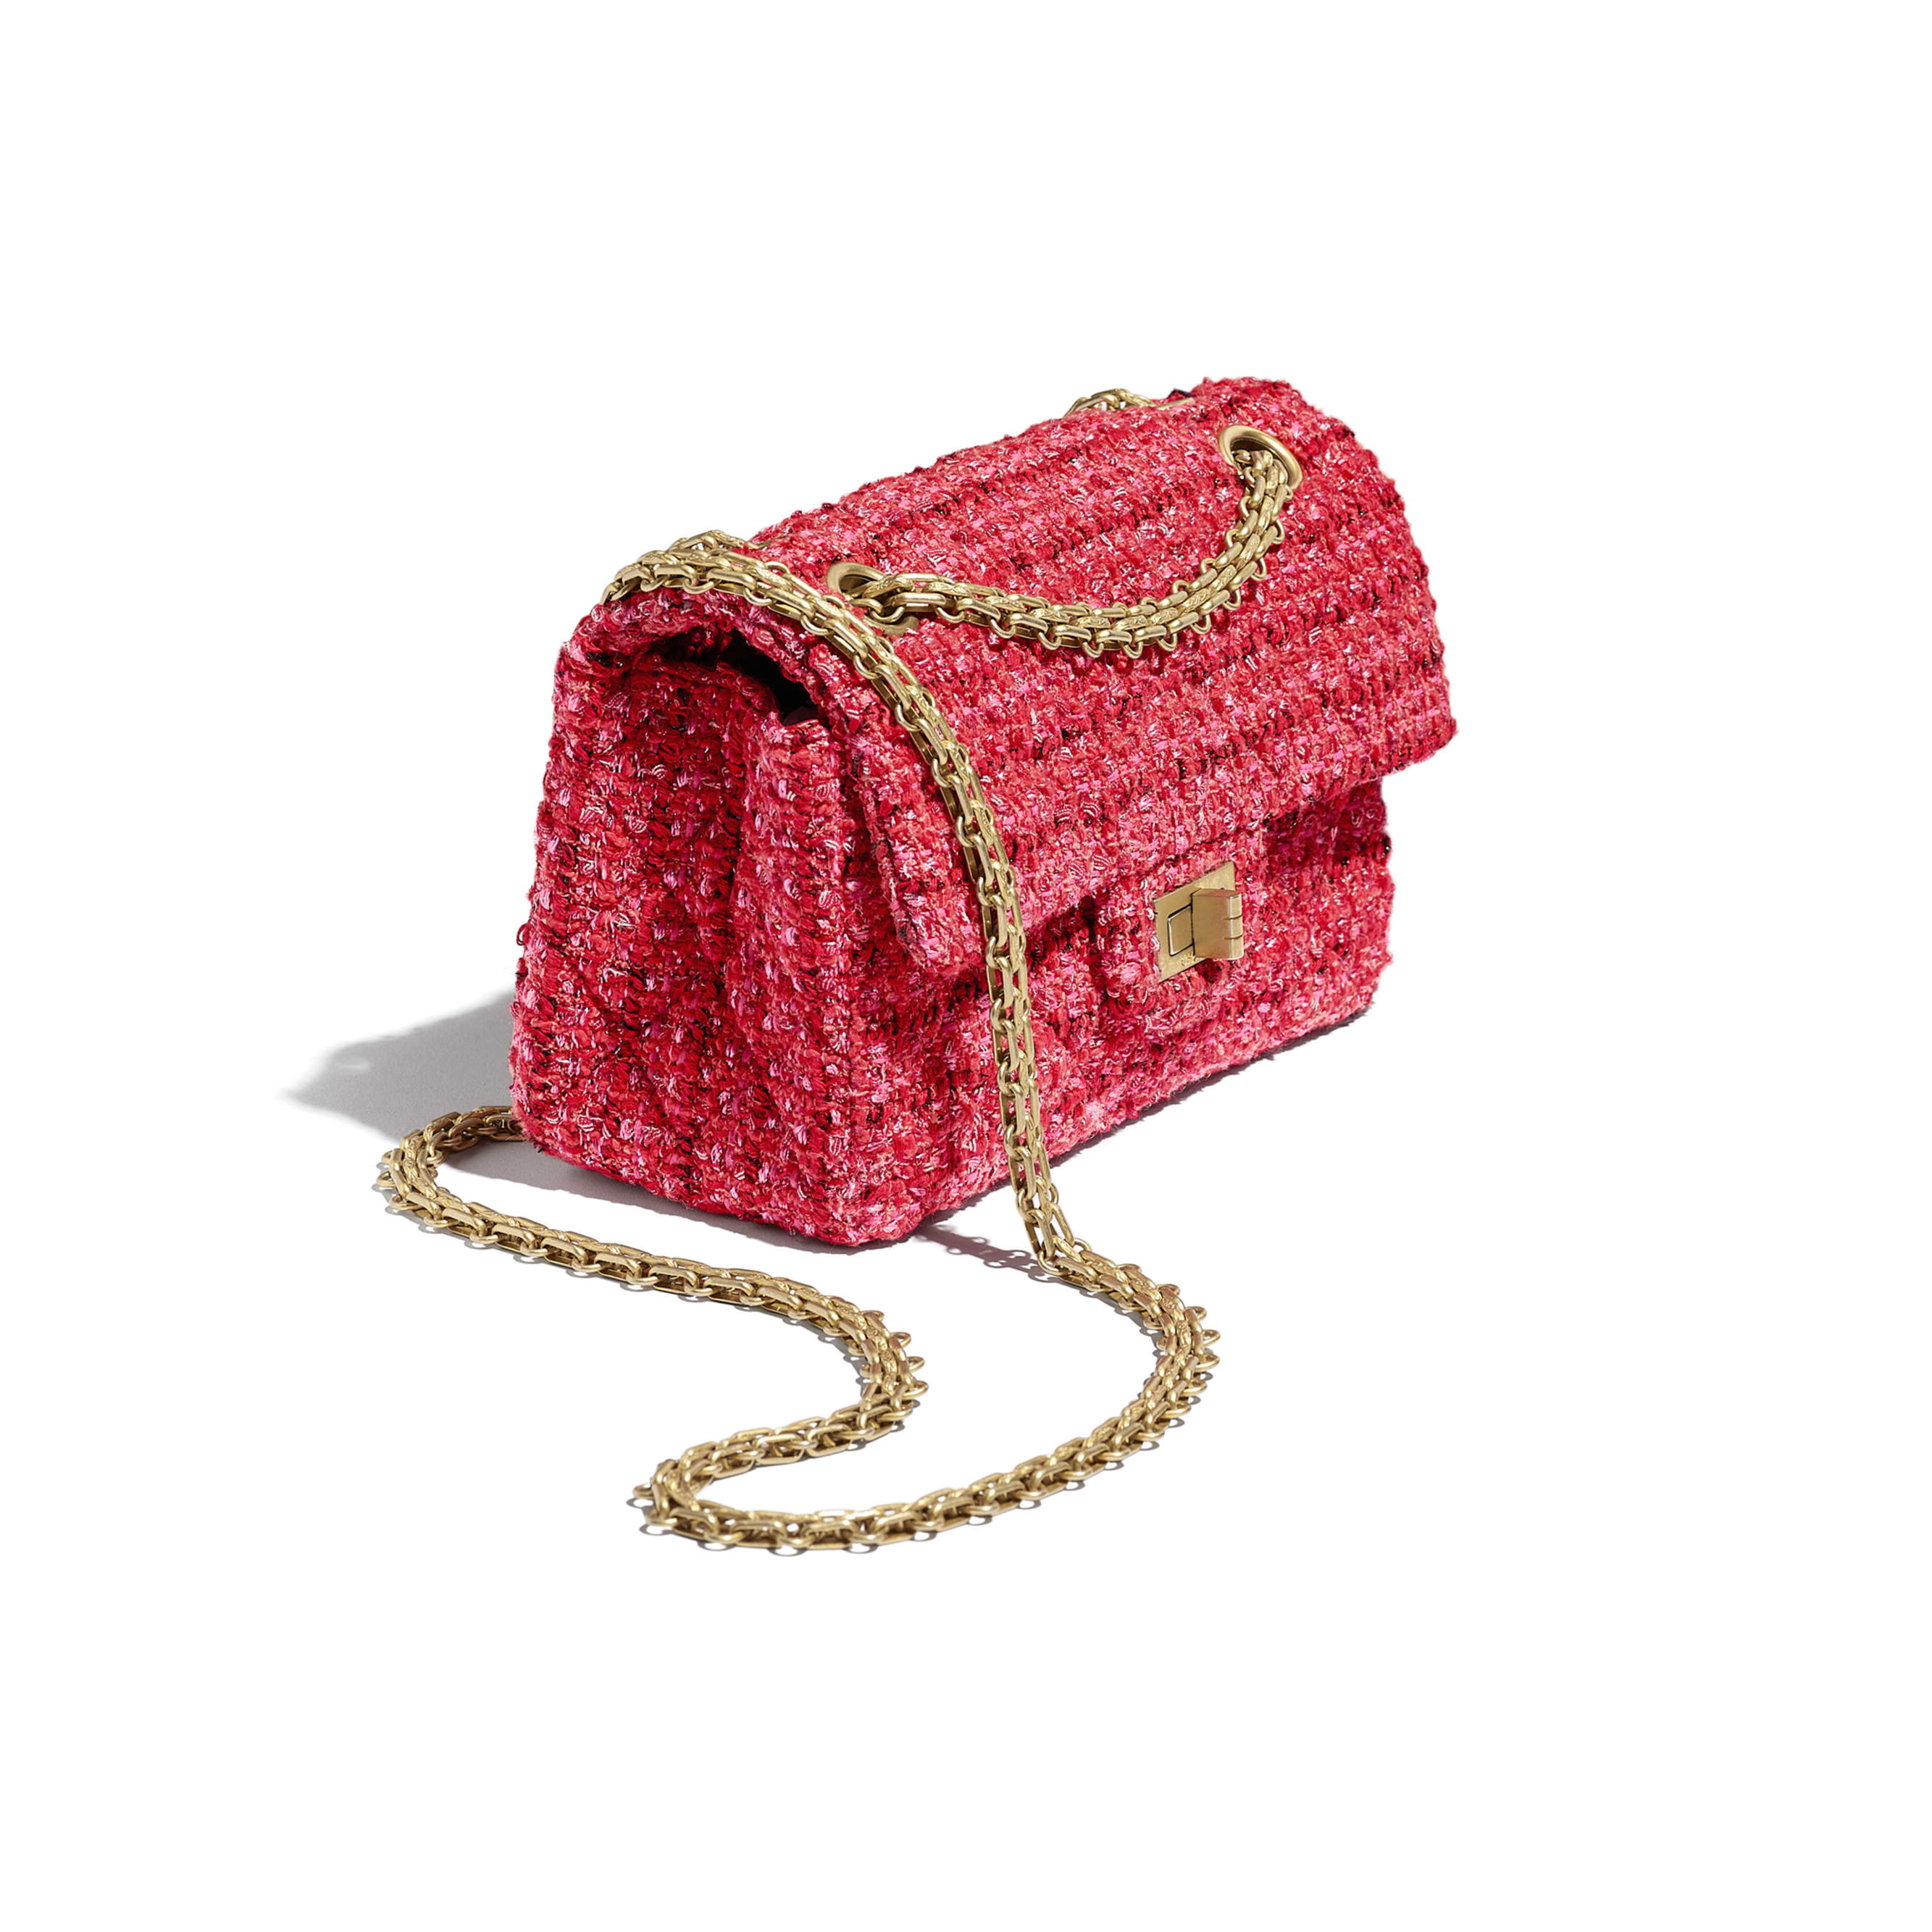 Small 2.55 Handbag - Red, Ecru & Black - Tweed & Gold Metal - Extra view - see standard sized version